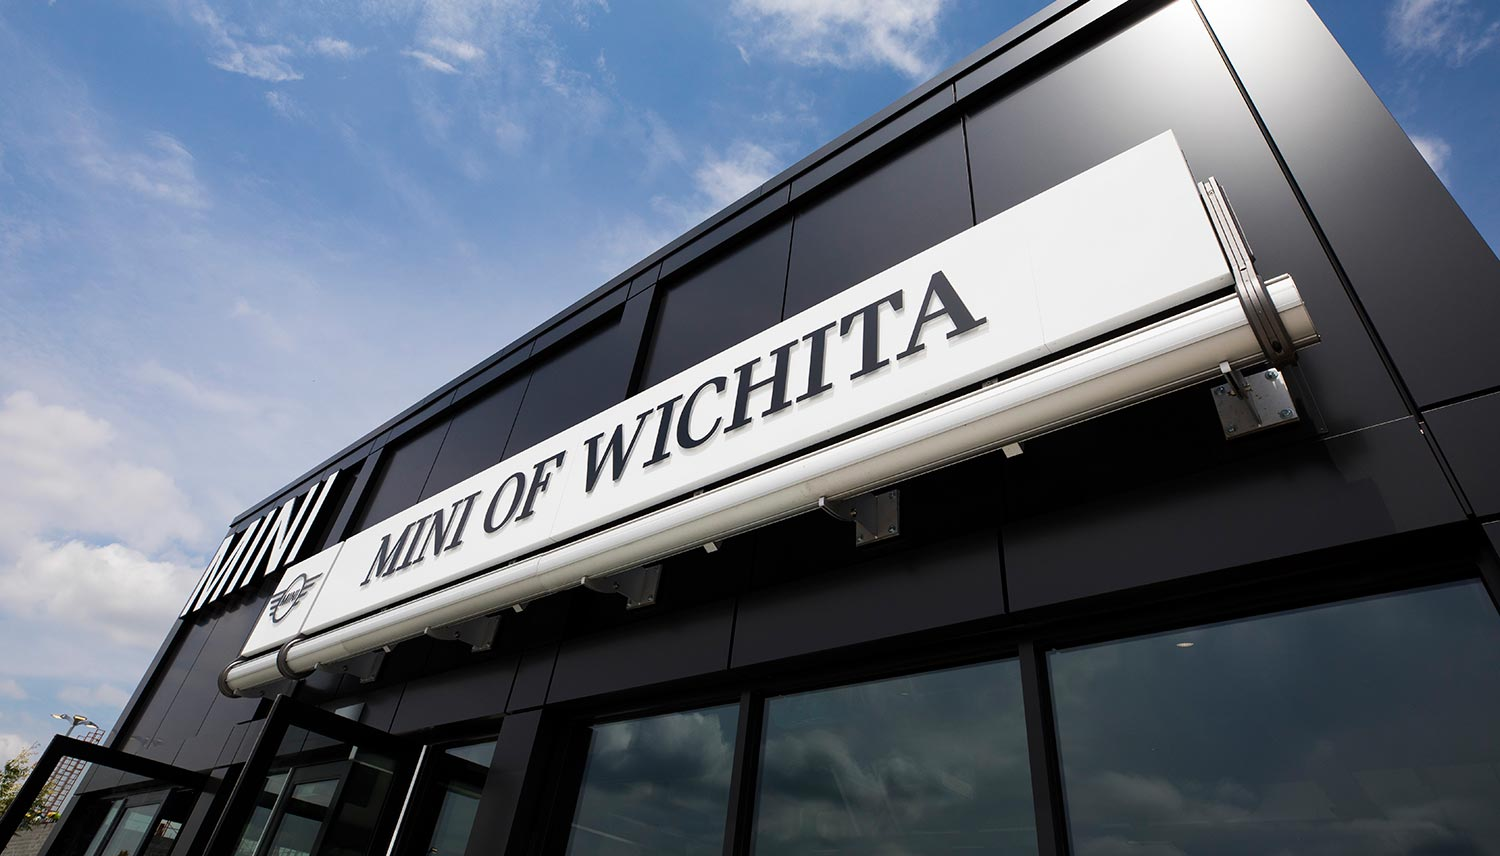 Mini of Wichita